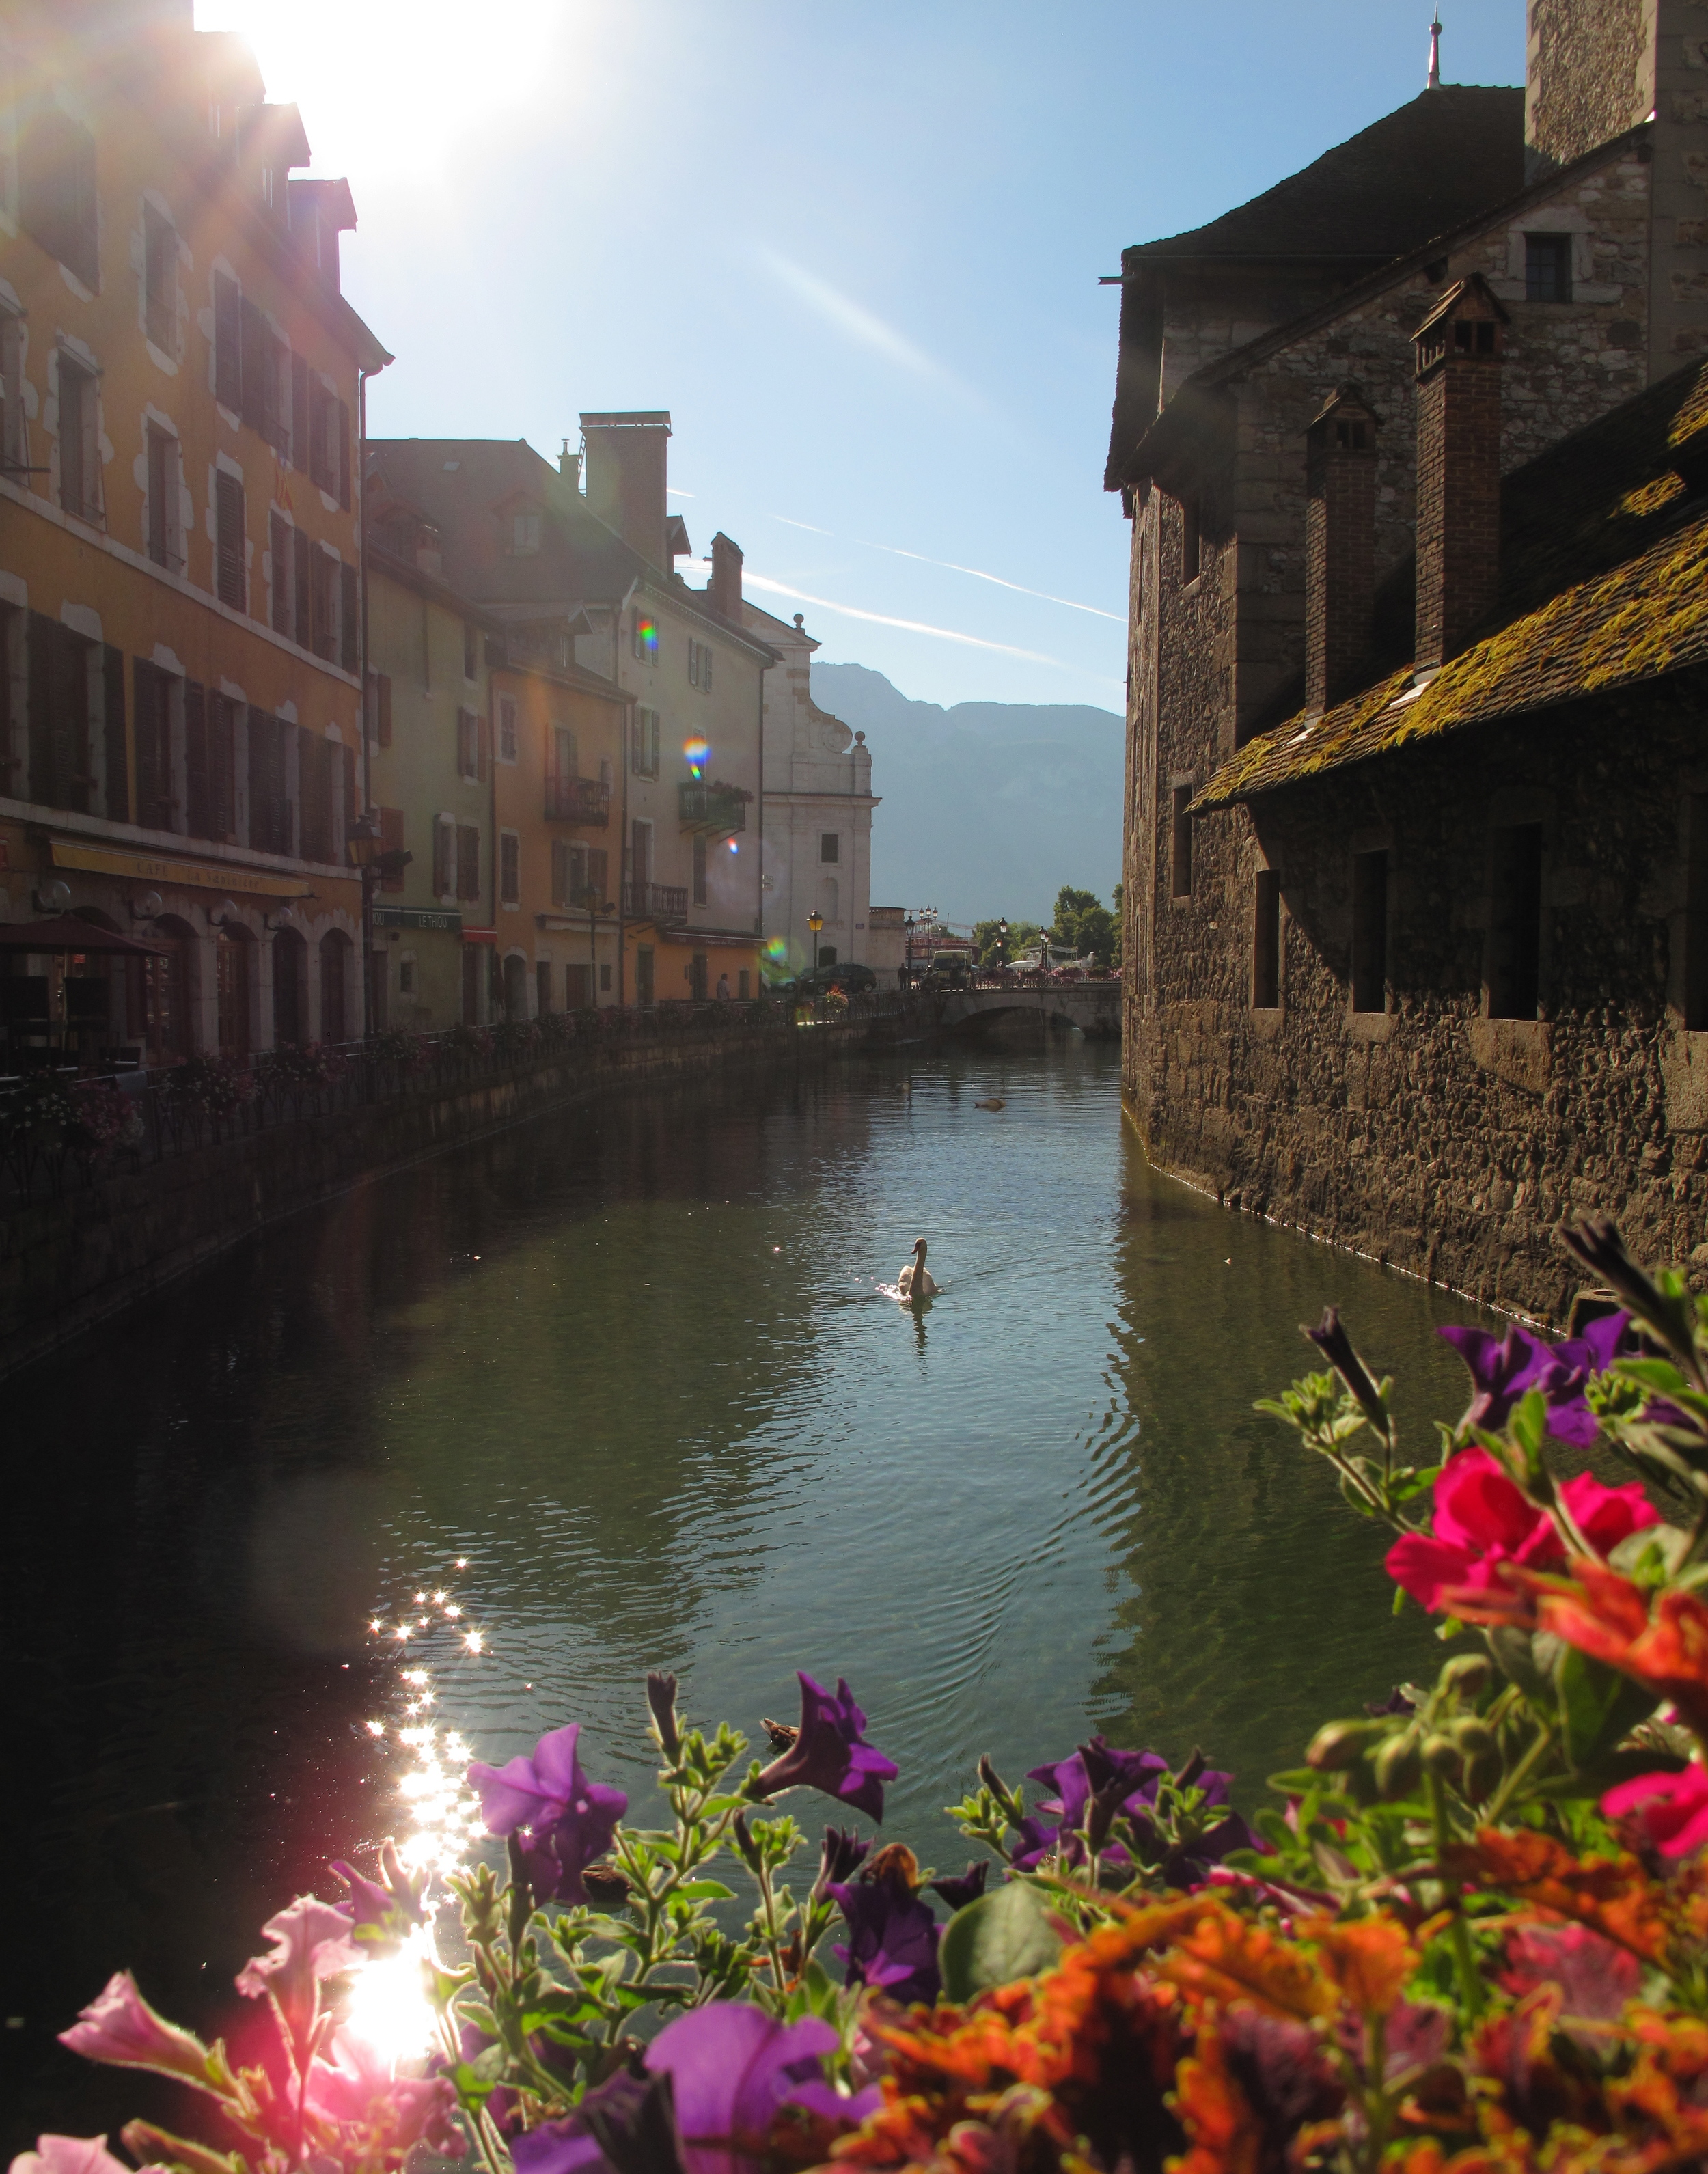 A swan on the canals of Annecy, in Summer time.